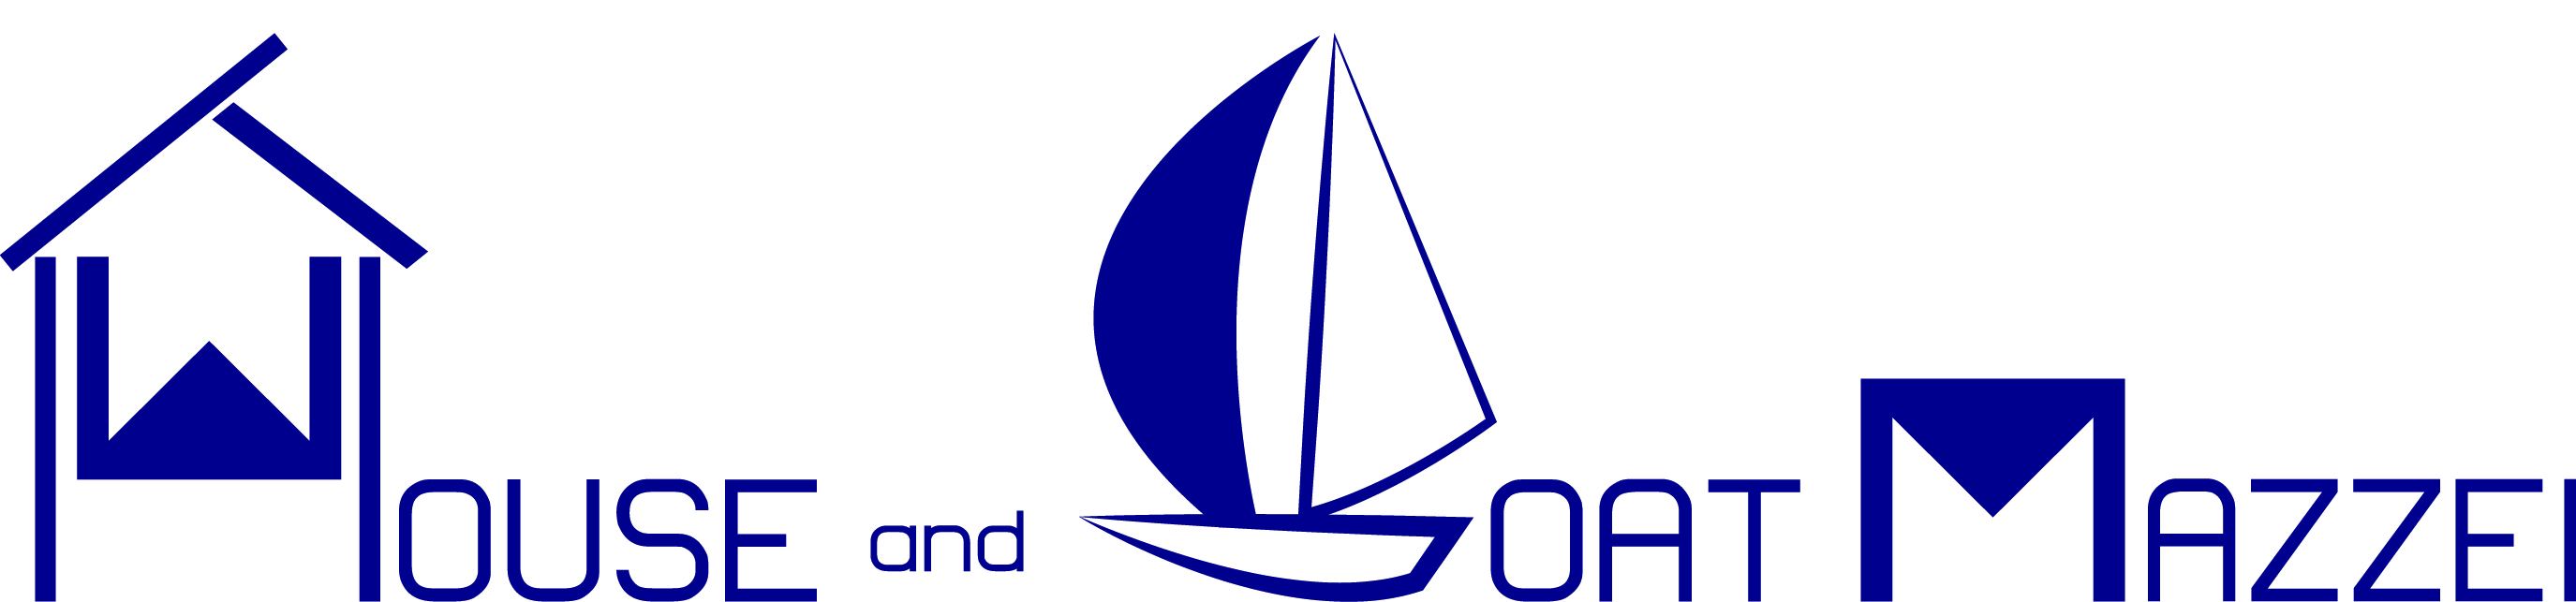 logo House and Boat Mazzei